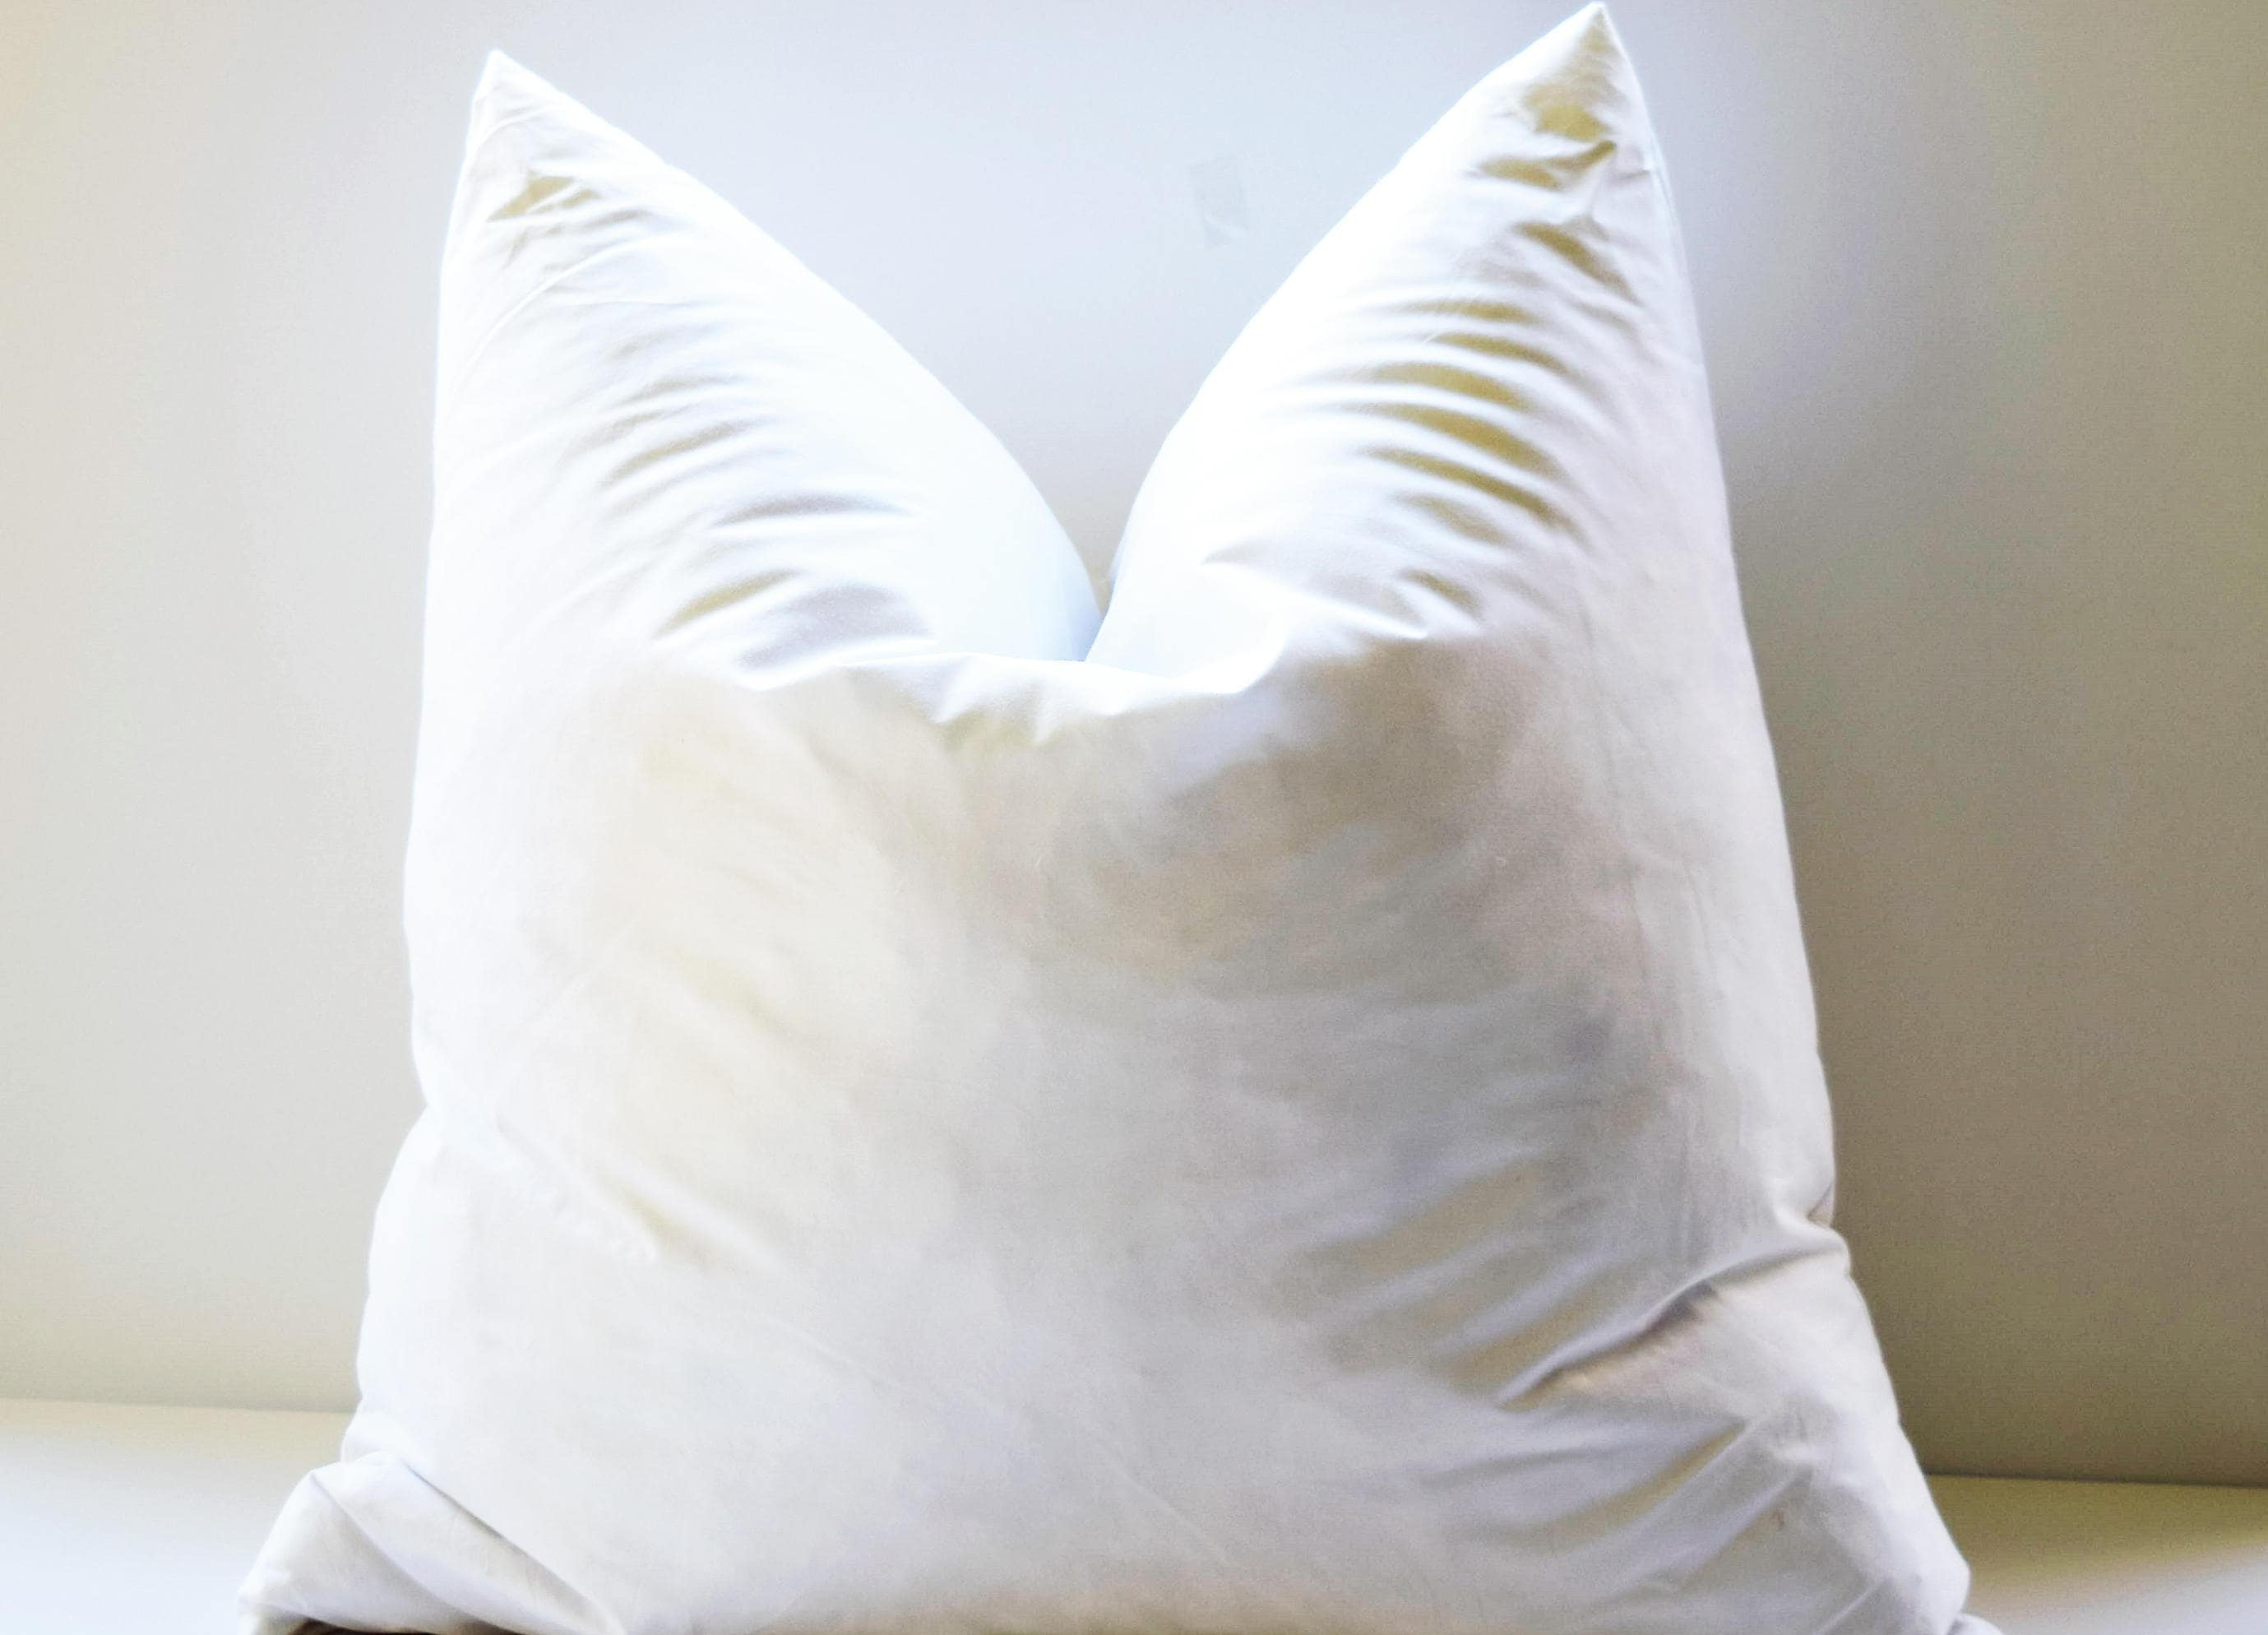 feathers waverly kupon gallery ellis blanket white inserts down and cushion reviews wayfairca goose pillow